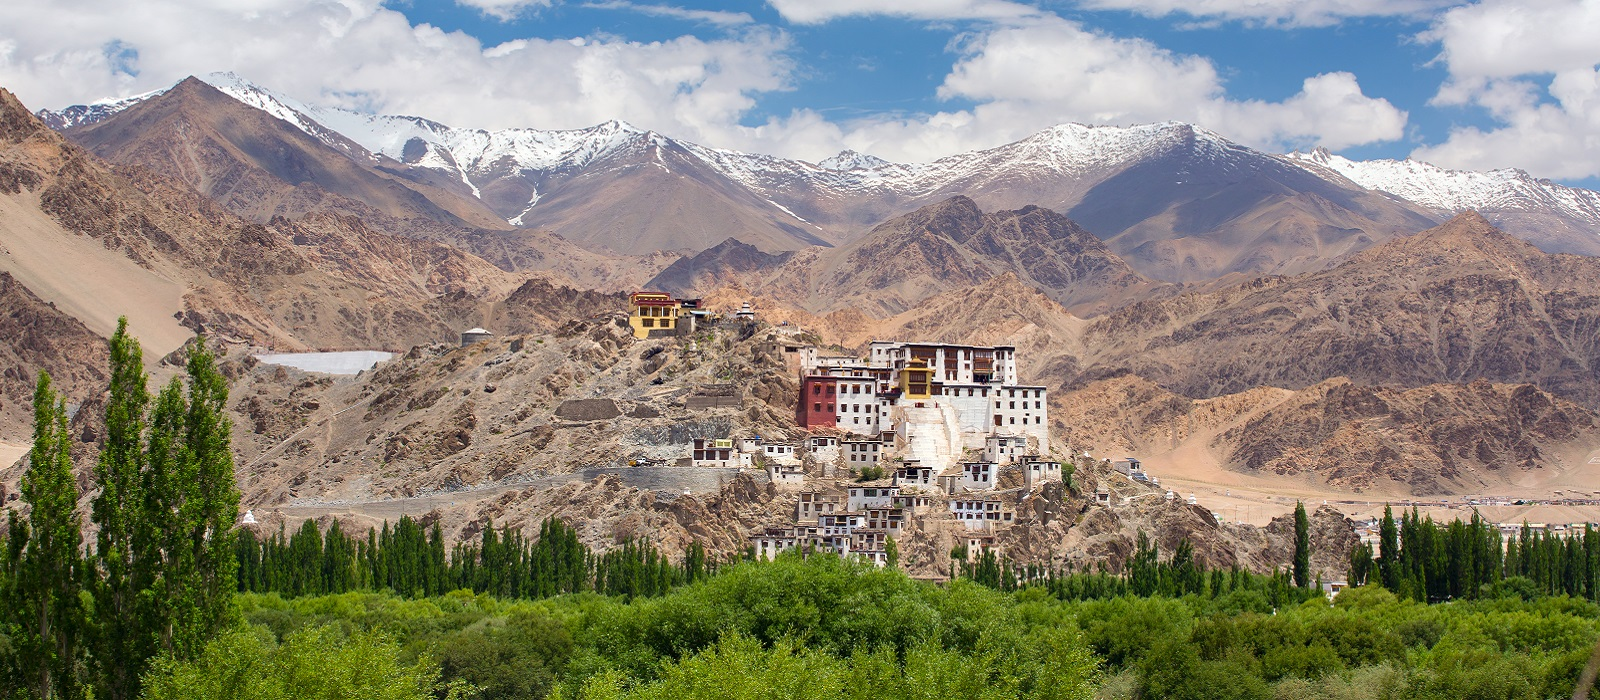 Enchanting Travels India Tours Leh Spituk Monastery with view of Himalayas mountains. Spituk Gompa is a famous Buddhist temple in Ladakh,